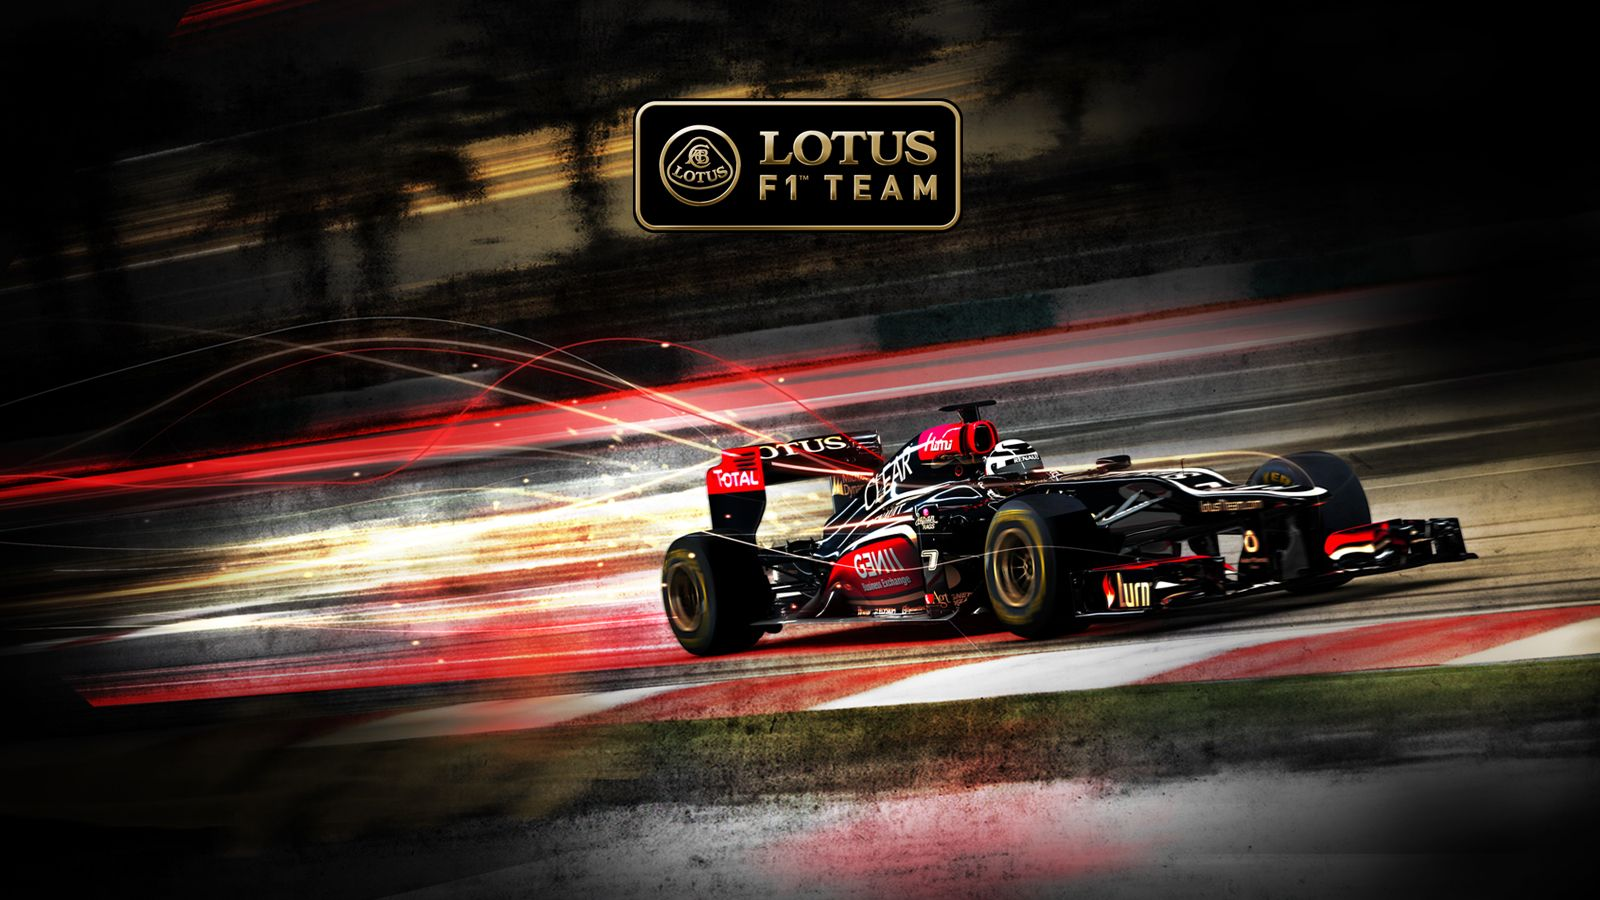 I Choose To Inspire My Self From This Image Because Since F1 Is A Very Very Fast Sport The Photographer Managed To Freeze The Ac Lotus F1 Team Wallpaper Lotus